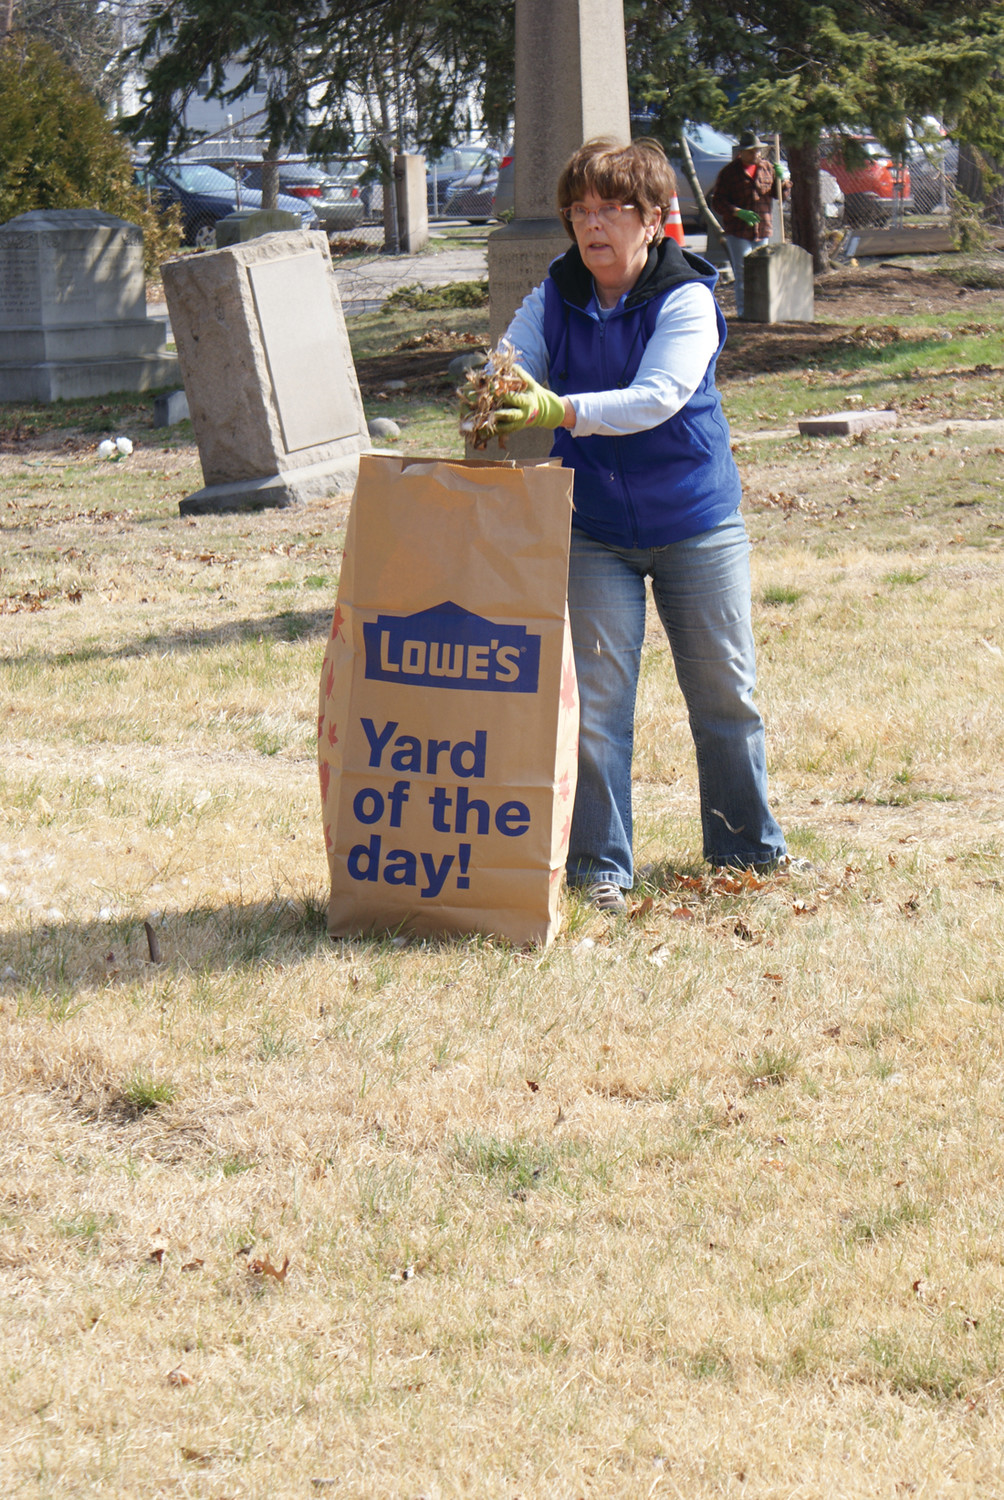 DOING HER PART: Linda Martin, a volunteer from Carpenter Jencks Funeral Home in Warwick, volunteered her day for the cleanup of the historic Oakland Cemetery